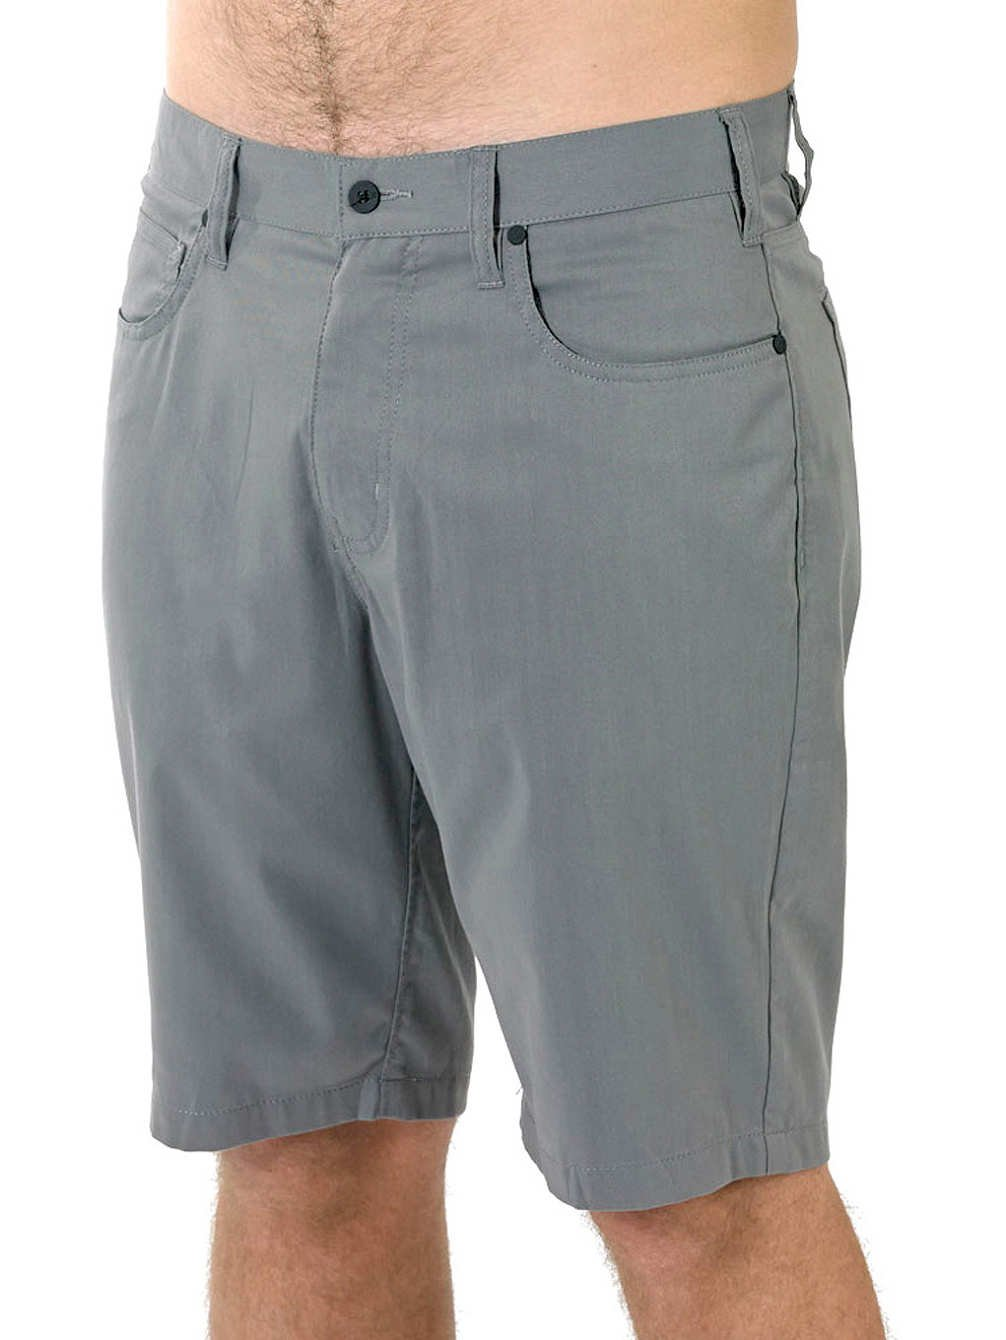 Hurley TIAS Men's Bermuda Shorts